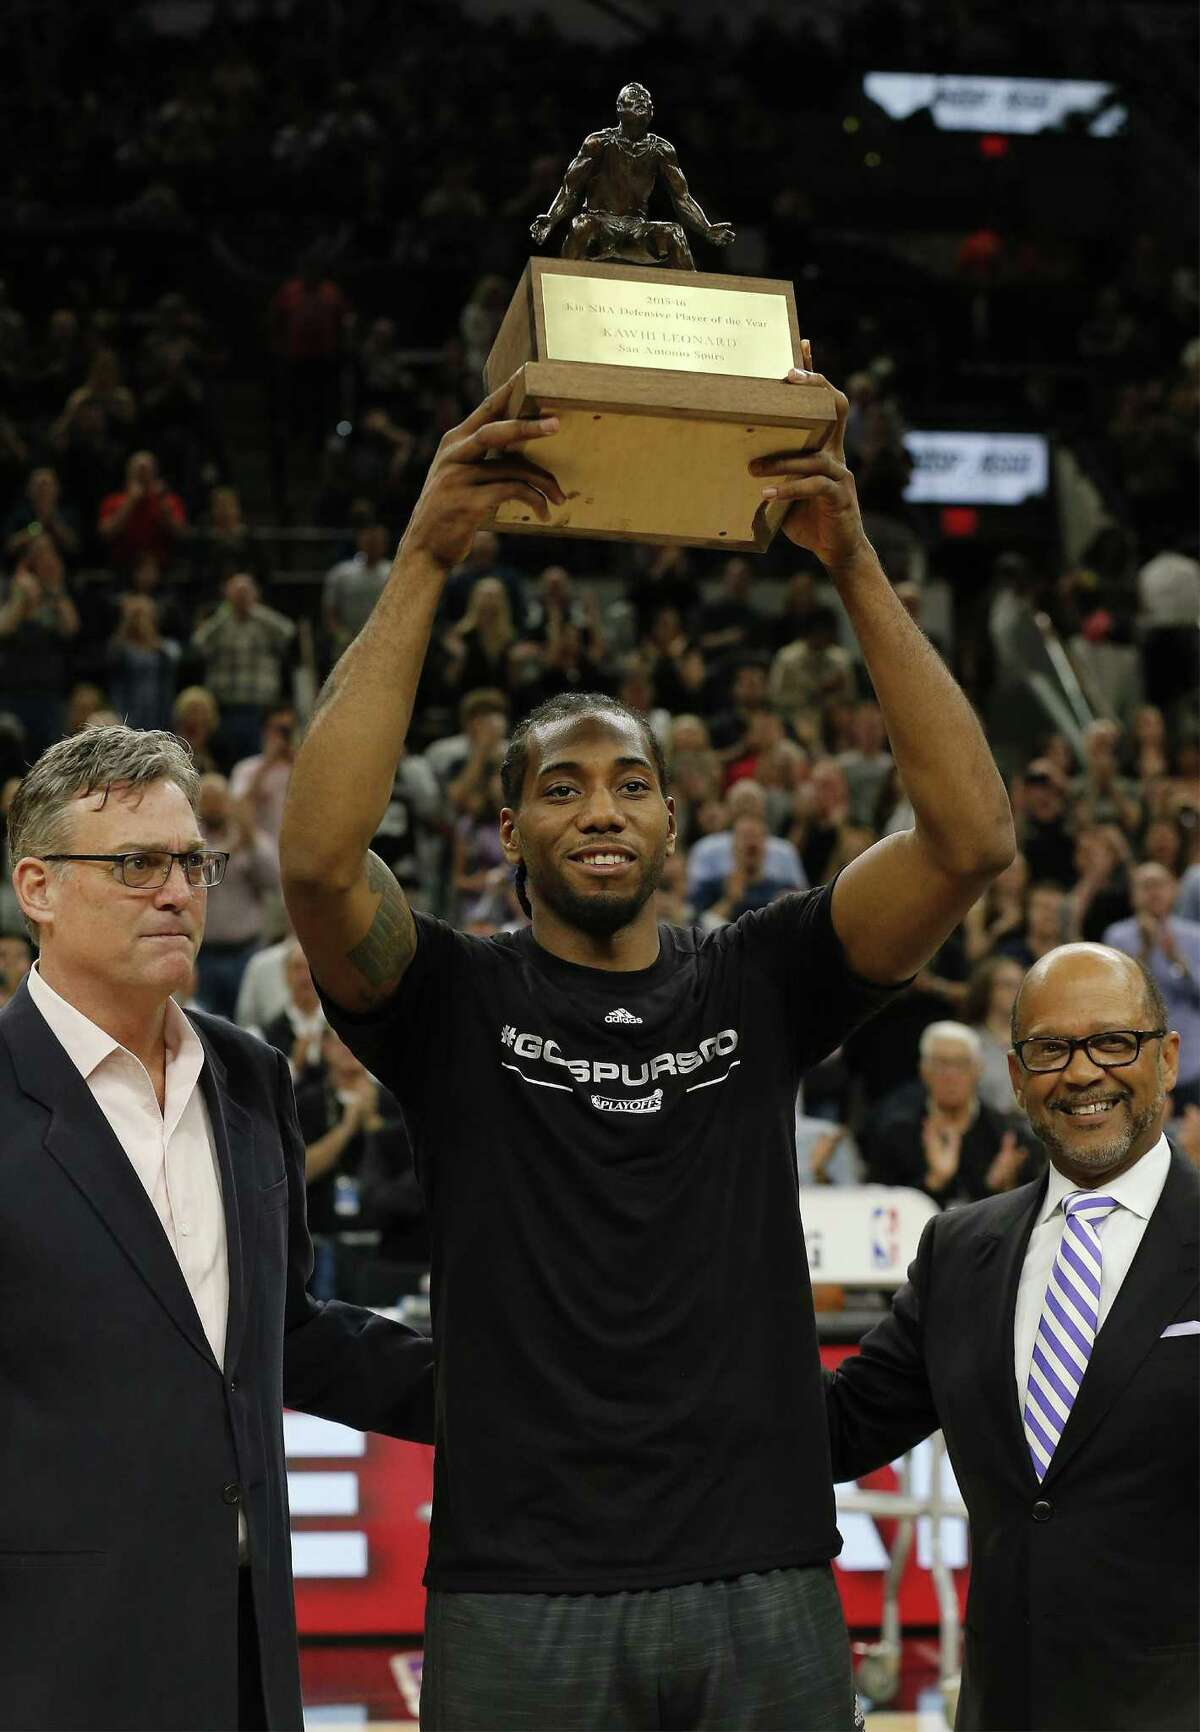 Spurs' Kawhi Leonard (center) holds up the NBA Defensive Player of the Year trophy alongside Spurs general manager R.C. Buford (left) before the start of Game 2 of a first-round playoff series against the Memphis Grizzlies at the AT&T Center on April 19, 2016.